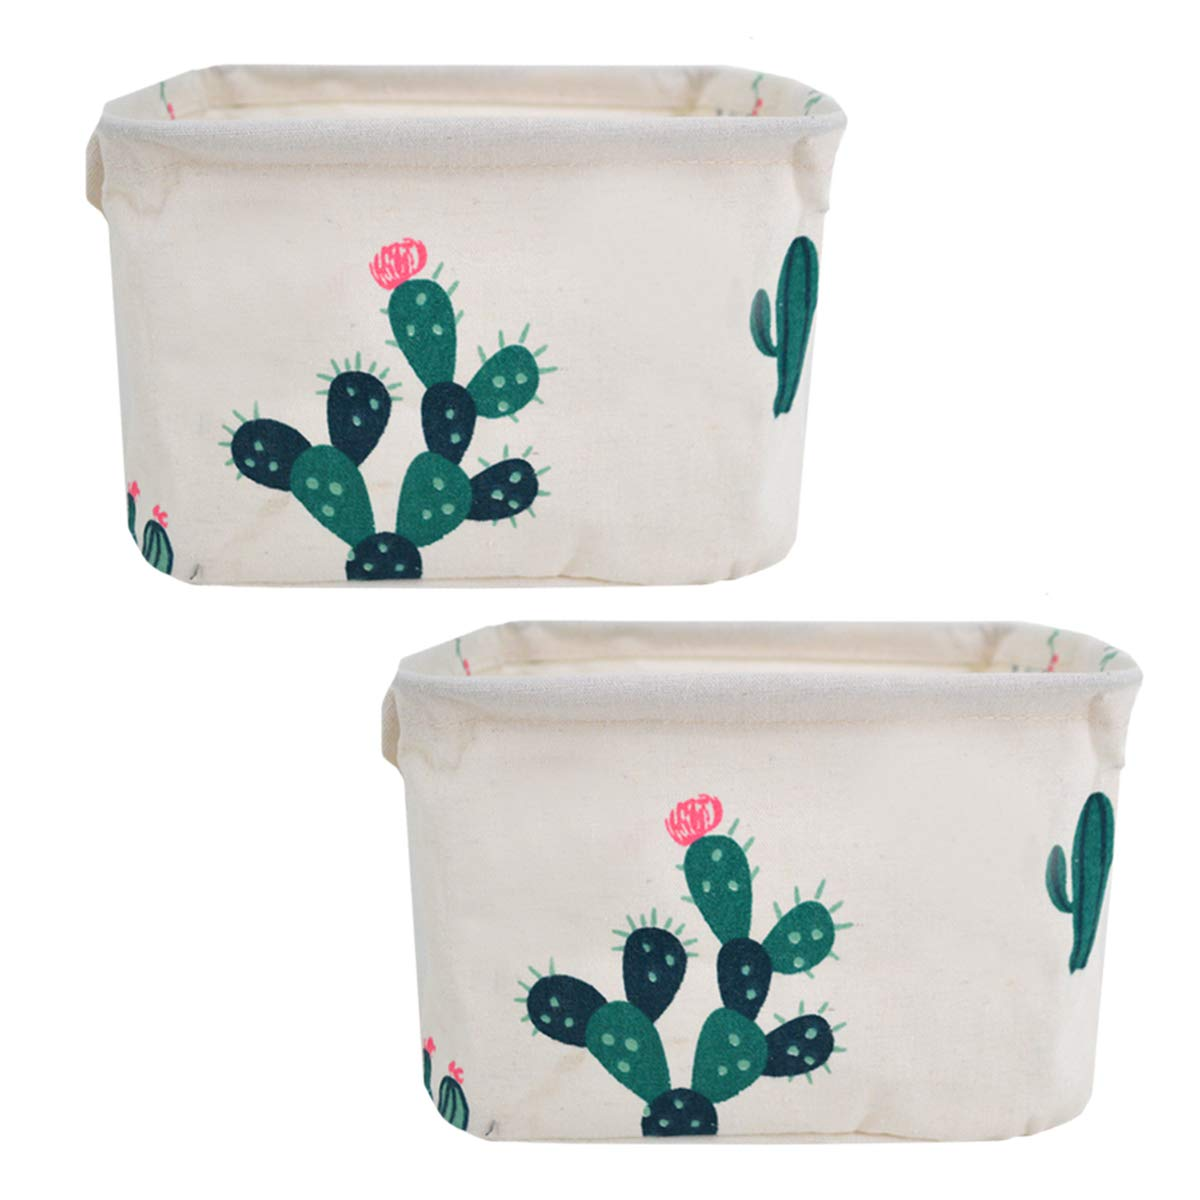 Danse Jupe 2 Pack Small Foldable Storage Bins Baskets Home Decor Cartoon Cloth Storage Box Organizers for Baby Toys,Stationery,Office Supplies(Green Cactus)